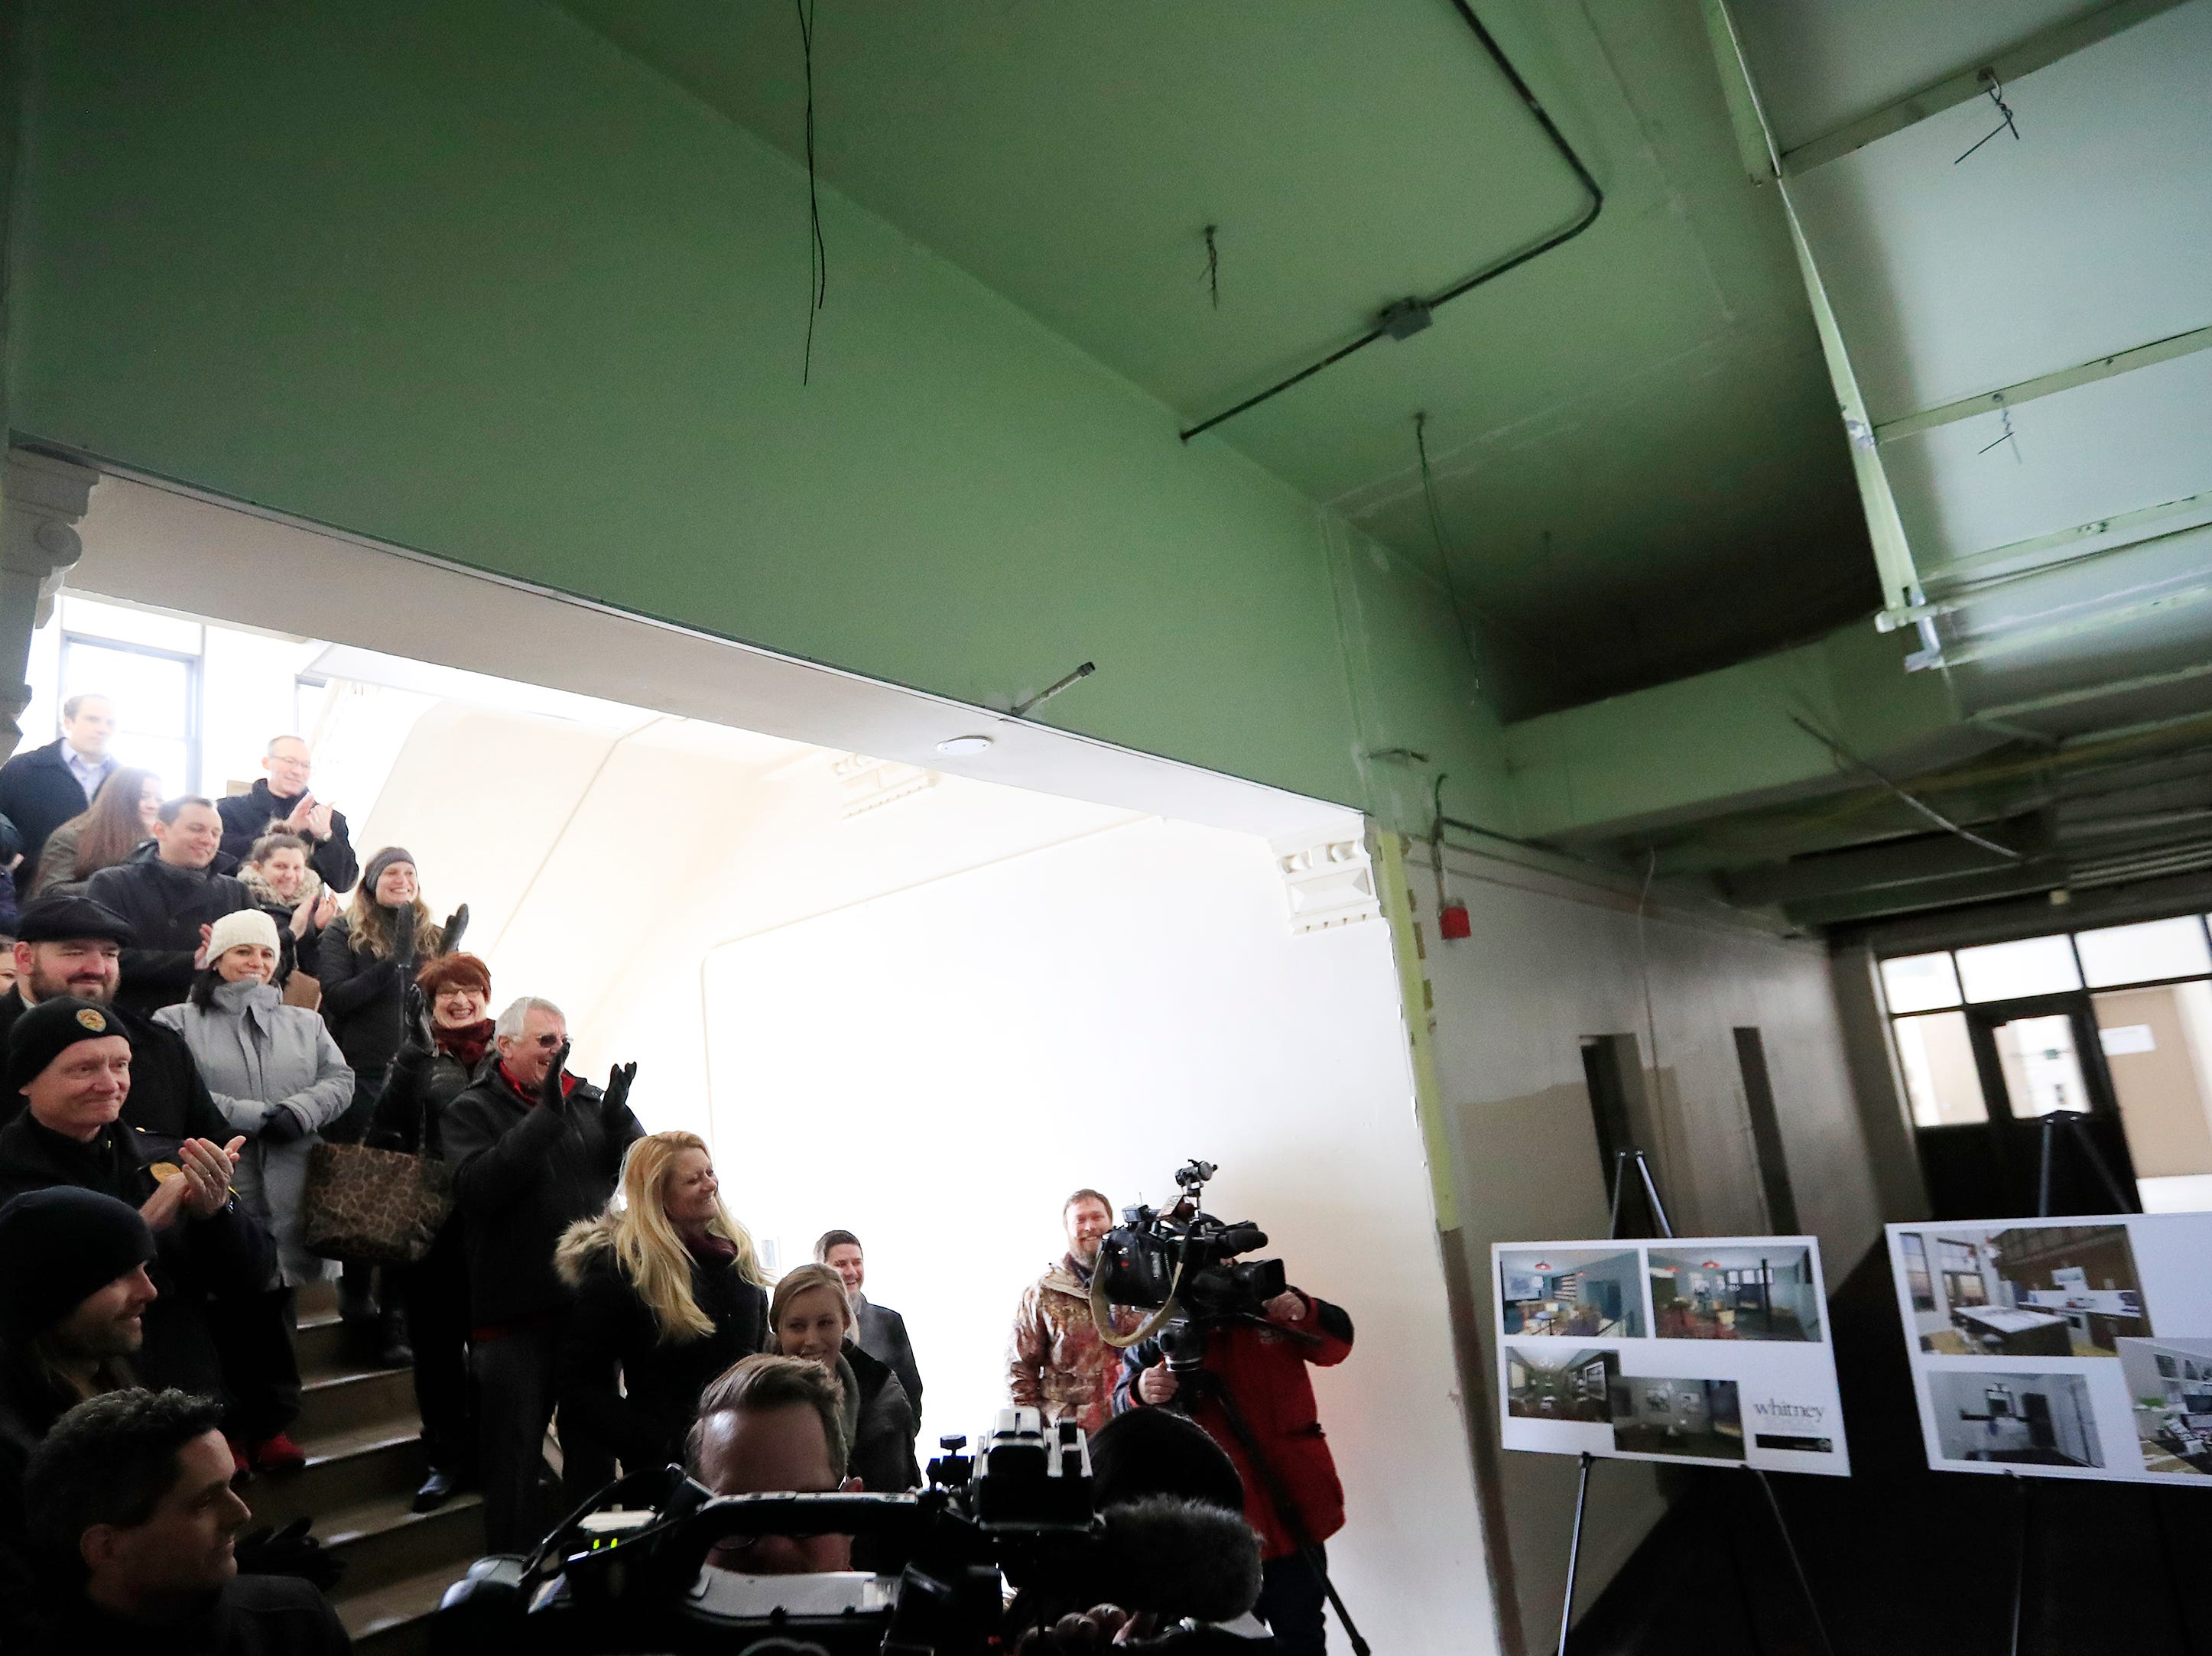 Officials and community members gather at the former Whitney School building to see the plans for converting the building to apartments on Tuesday, February 26, 2019 in Green Bay, Wis.